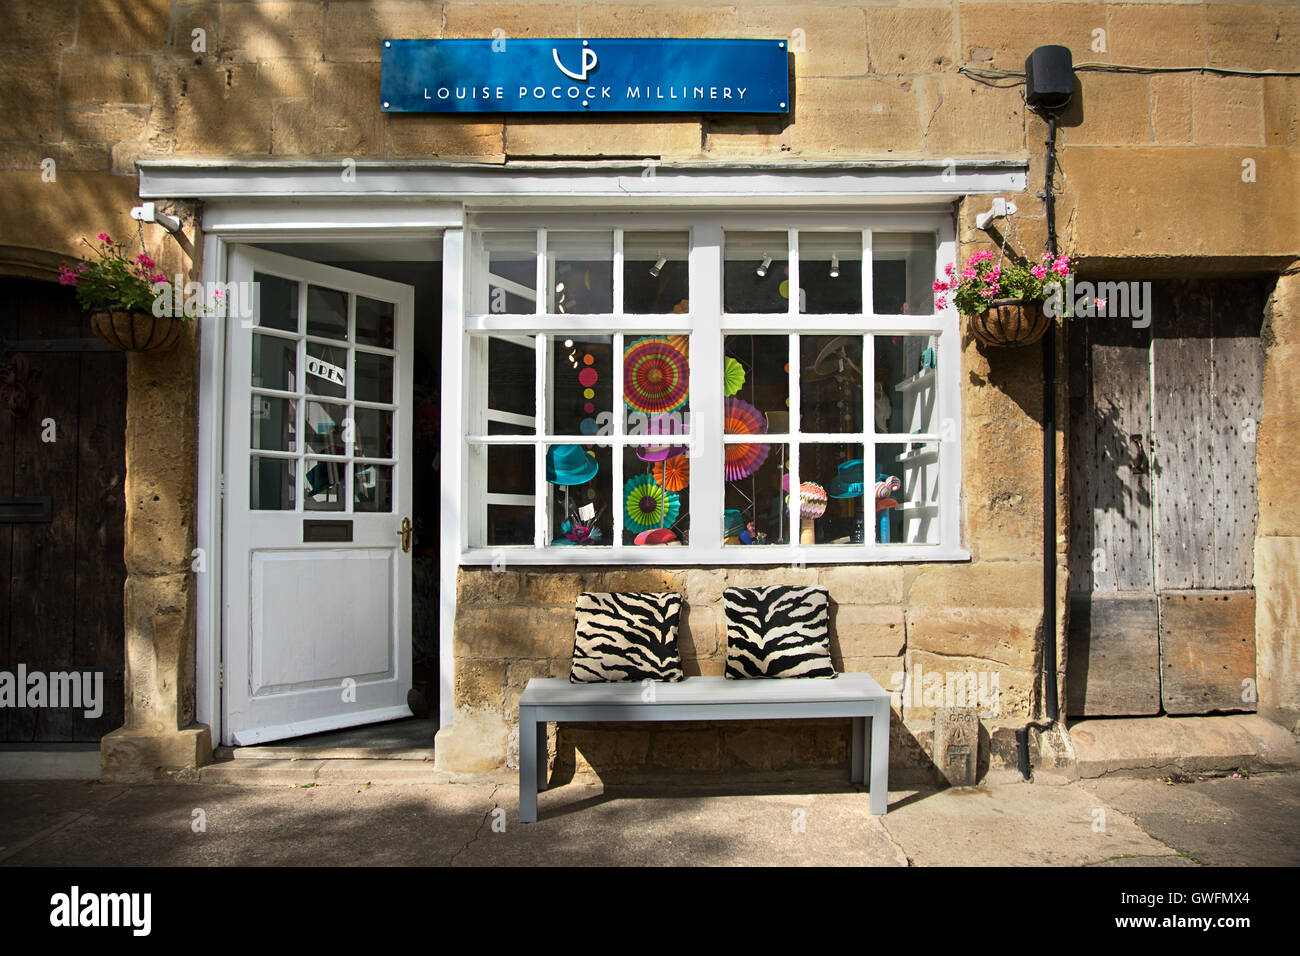 3f84627d72605 Louise Pocock bespoke millinery Cotswold Hat Shop Chipping Campden - Stock  Image